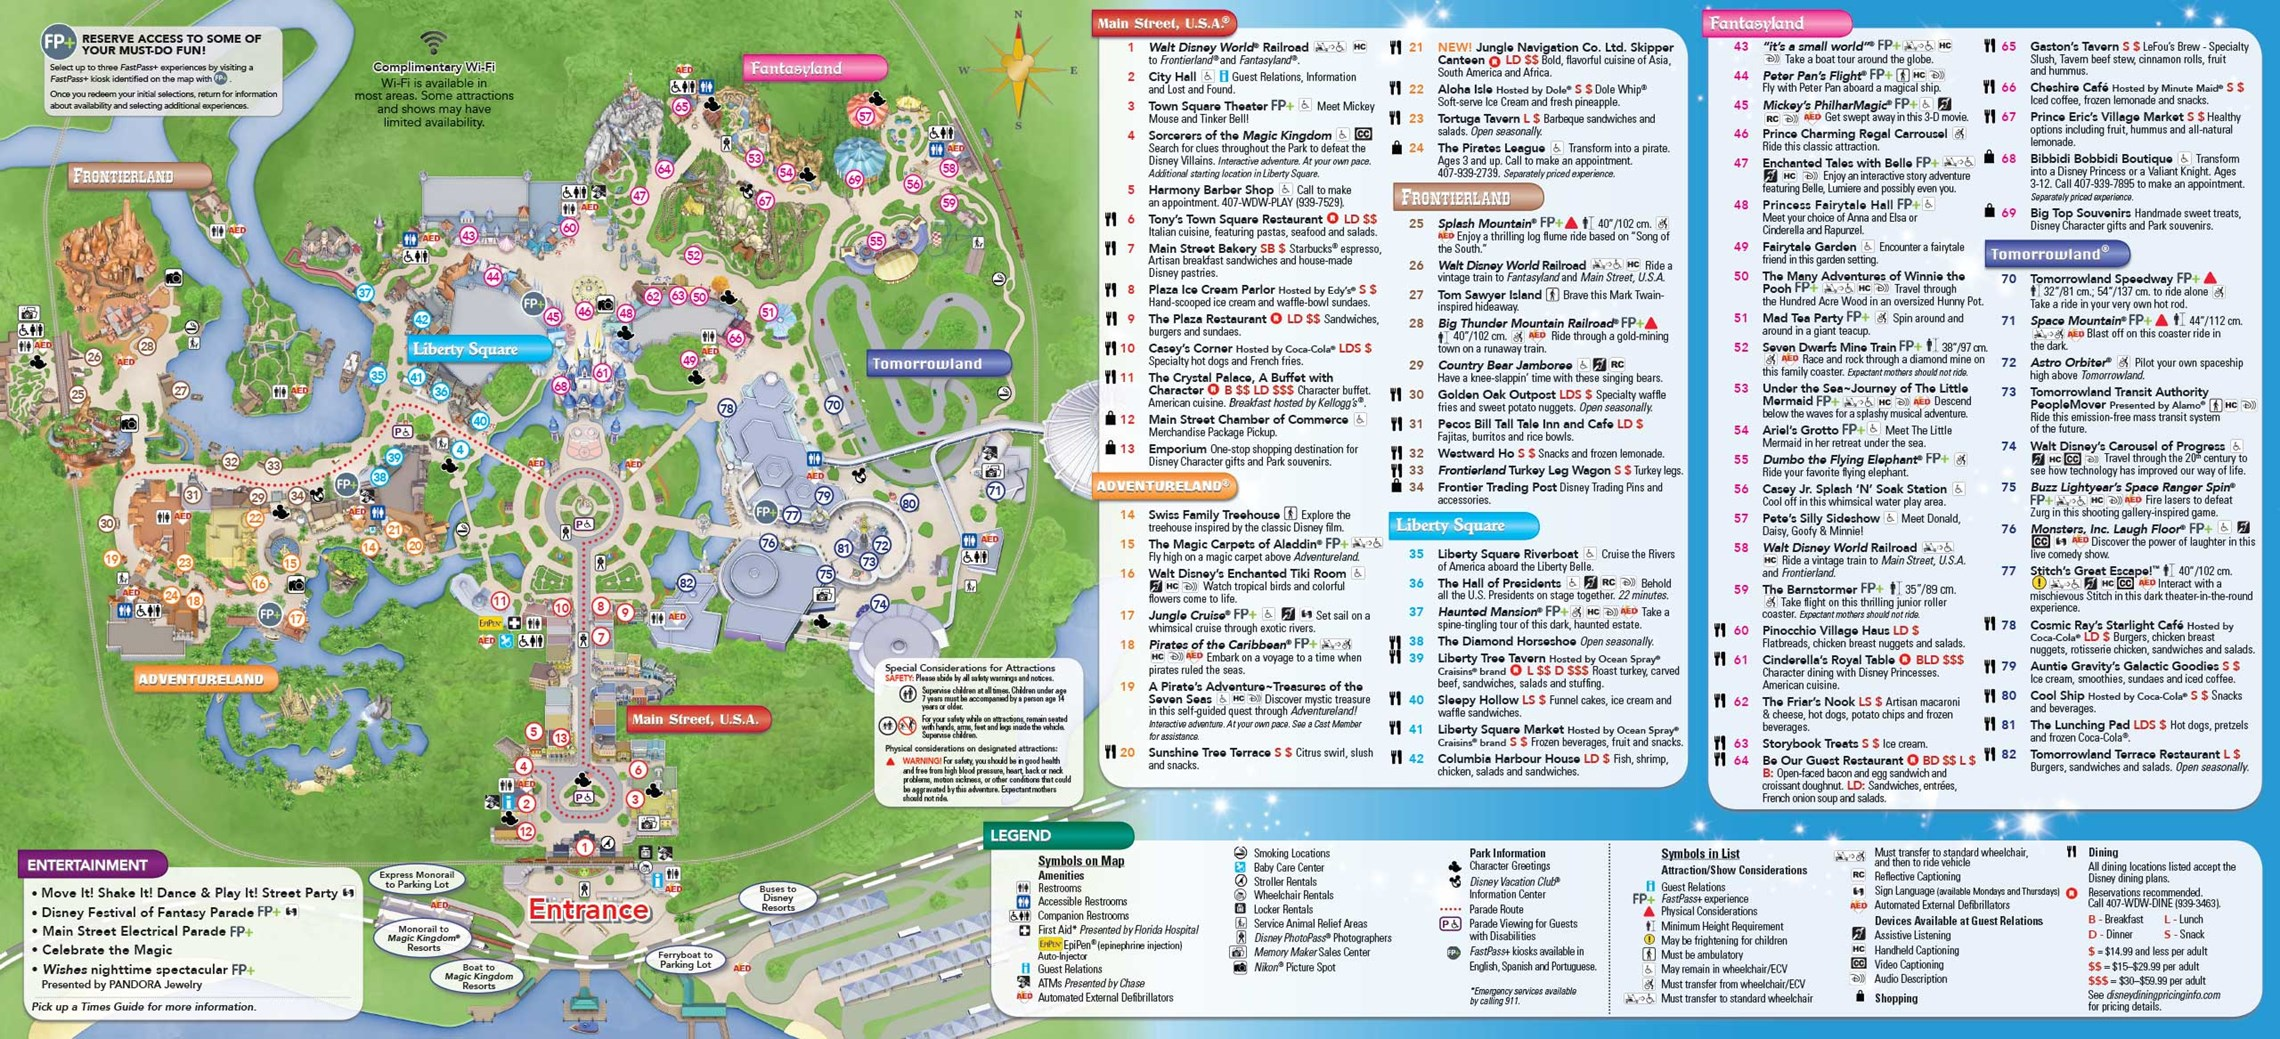 January 2016 Walt Disney World Park Maps Photo 8 Of 12